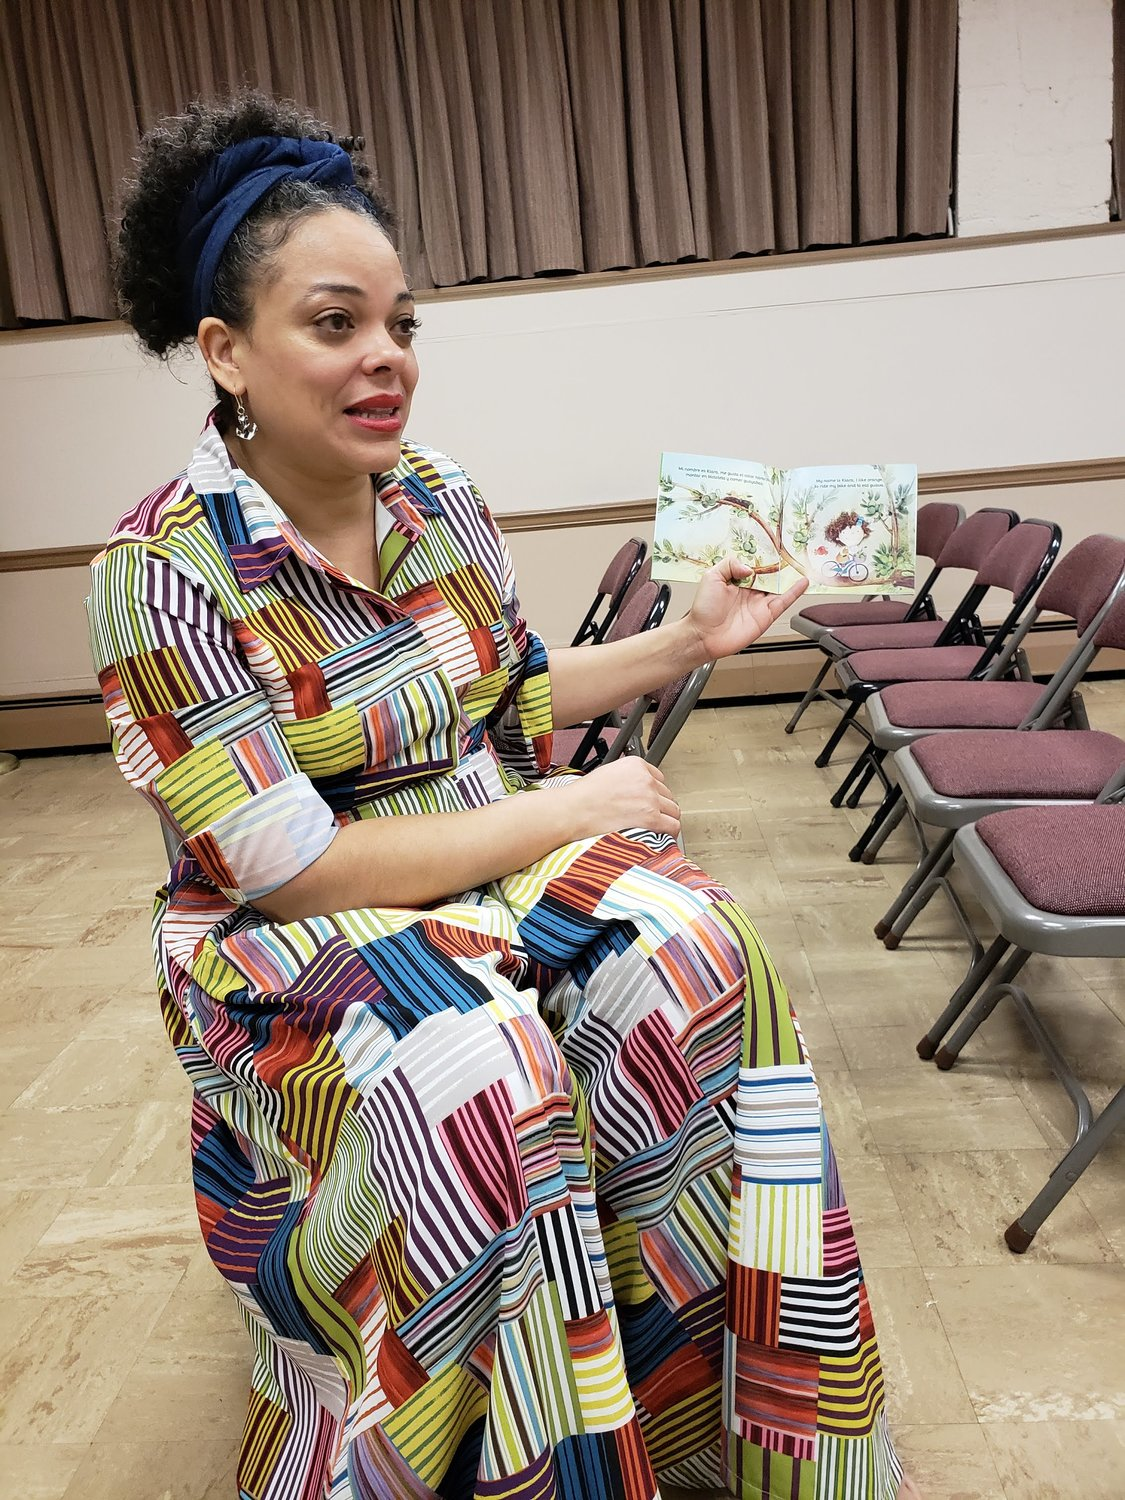 Author Kianny Antigua, who is also an adjunct professor at Dartmouth College in New Hampshire, presented her collection of books and stories at the Freeport Memorial Library on Sept. 28.